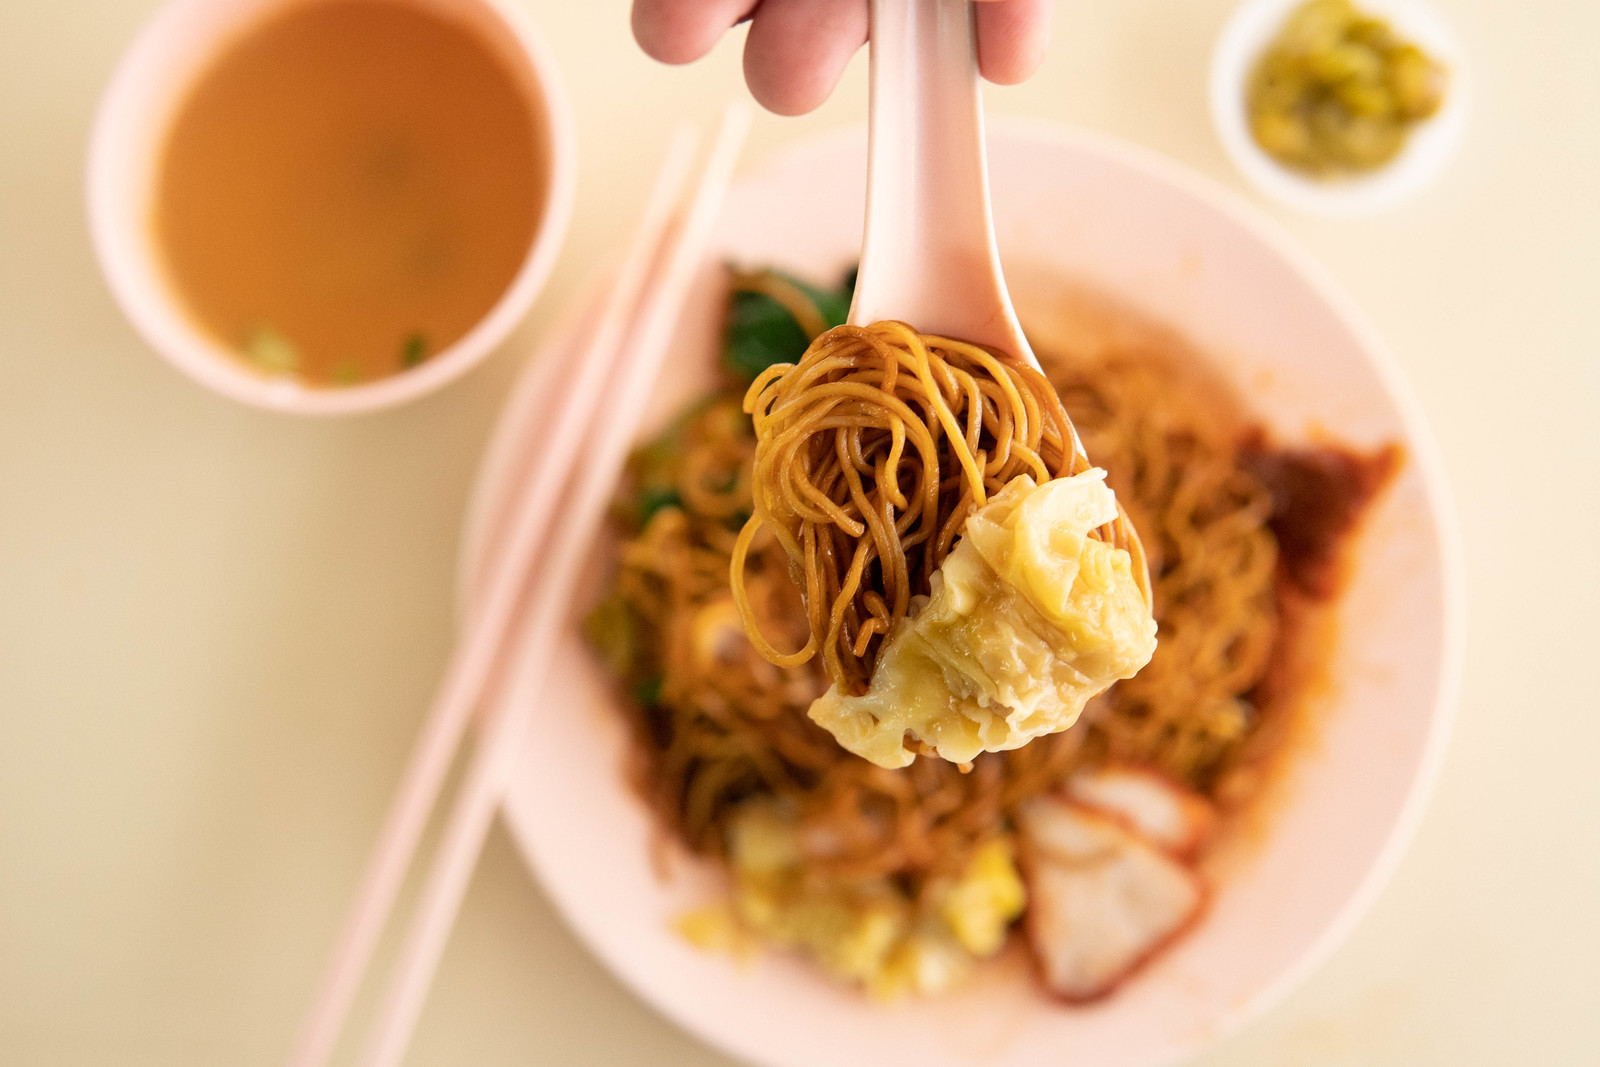 A spoonful of noodles with wantan